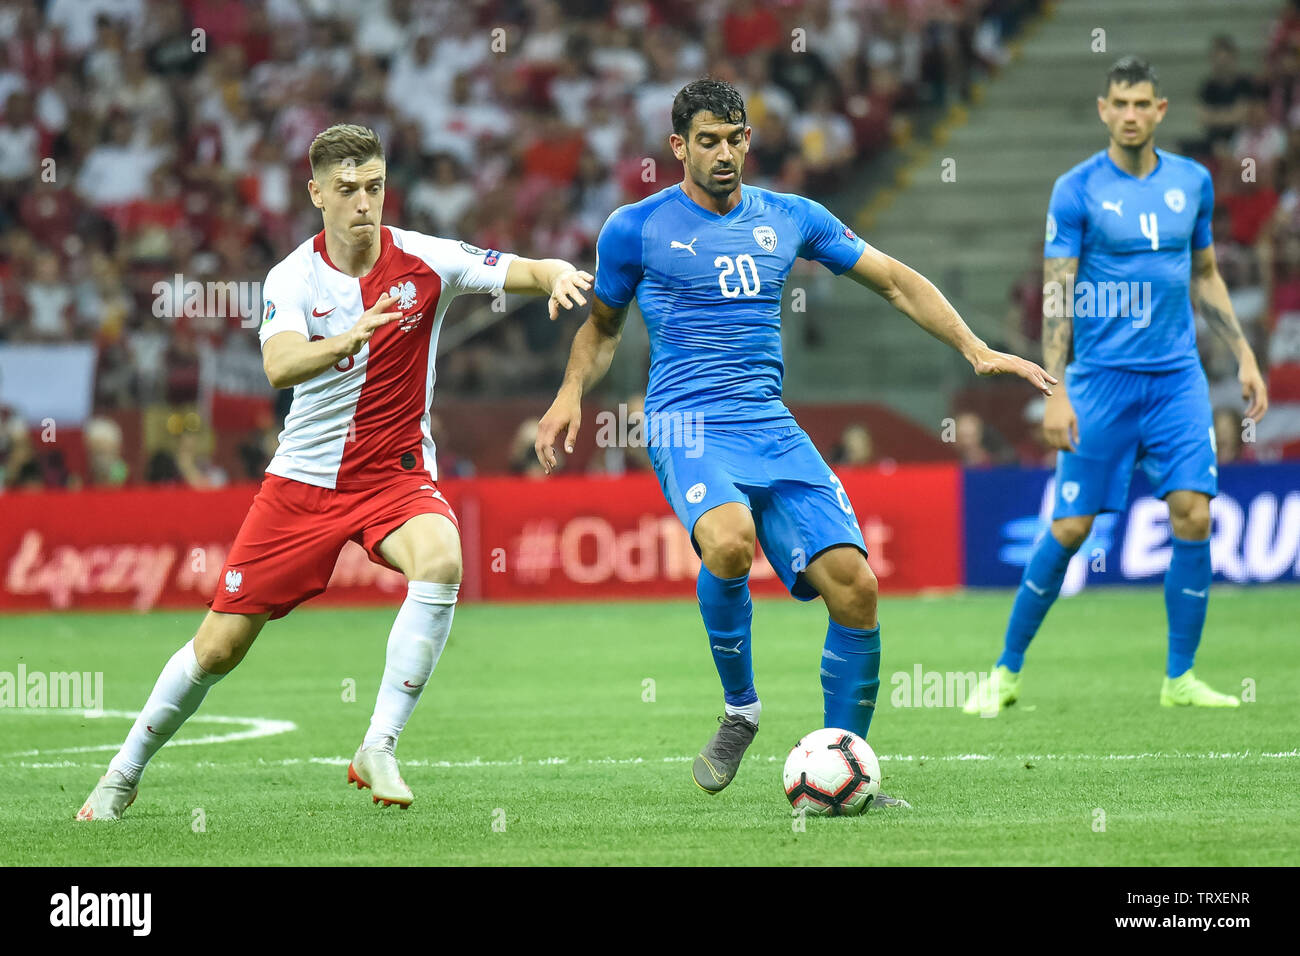 WARSAW, POLAND - JUNE 10, 2019: Qualifications Euro 2020  match Poland - Israel 4:0. In action Krzysztof Piatek (L) and Omri Ben Harush (R). - Stock Image